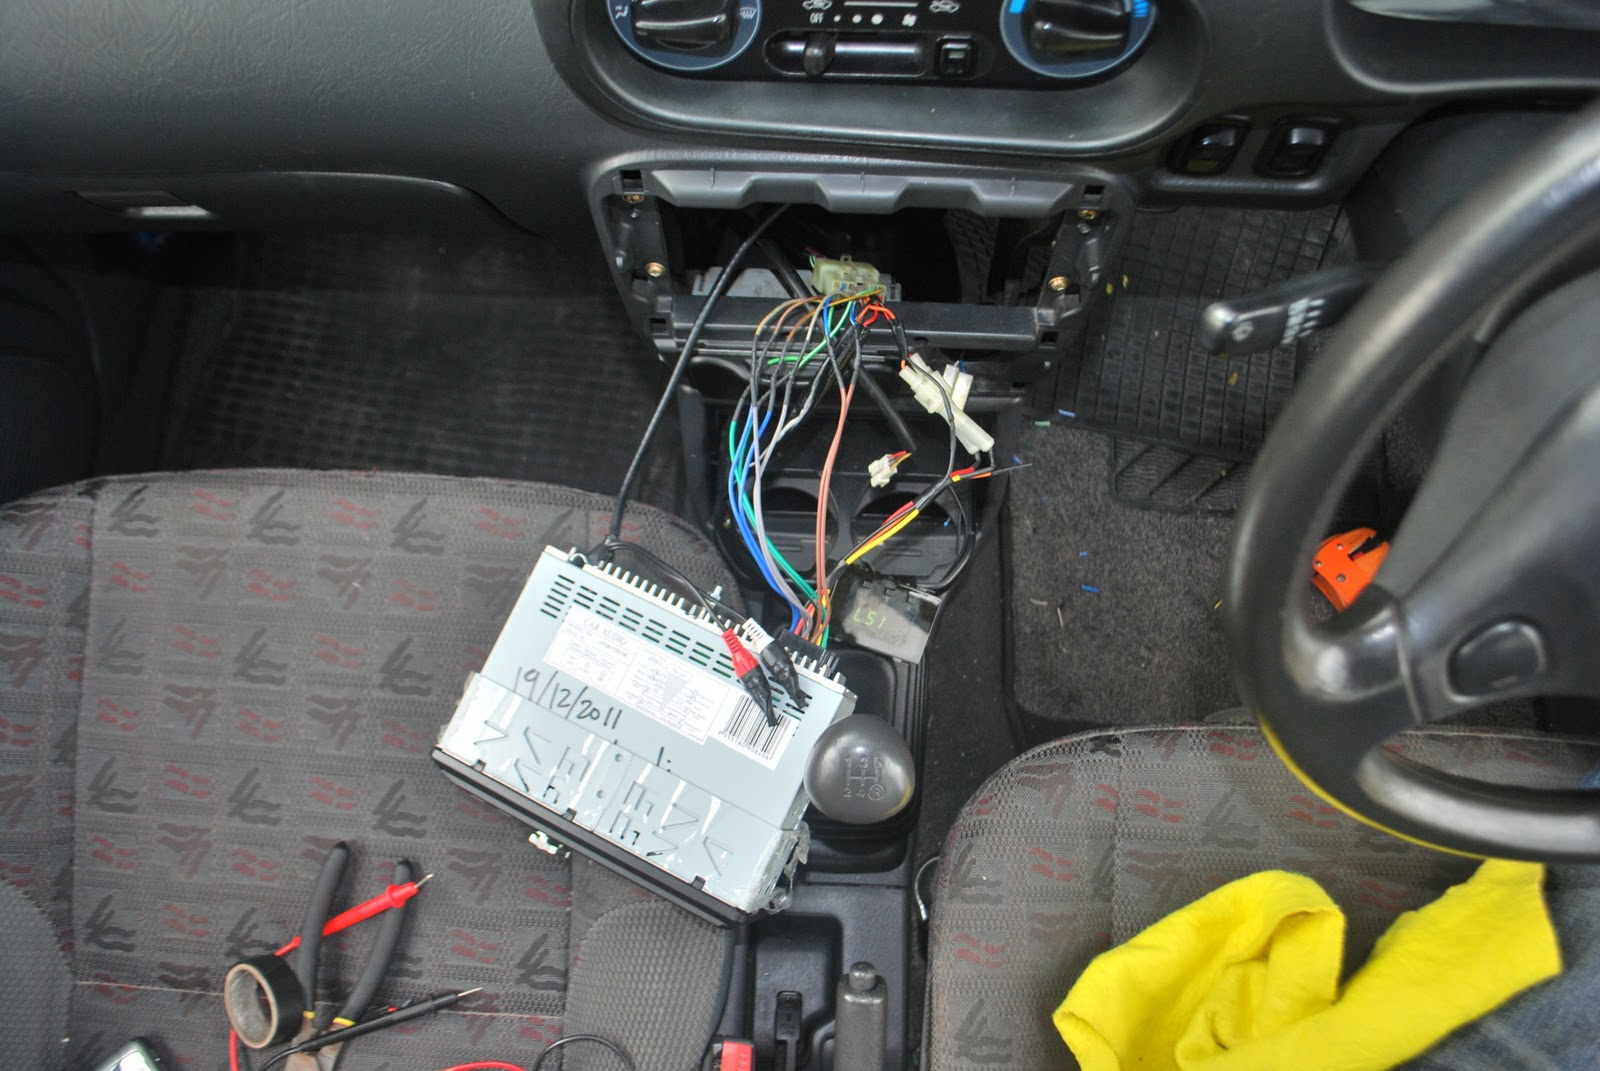 where black is grounding, im using original state of grounding, but my radio  before this never had this problem..i changed it becos receiver antenna is  ...